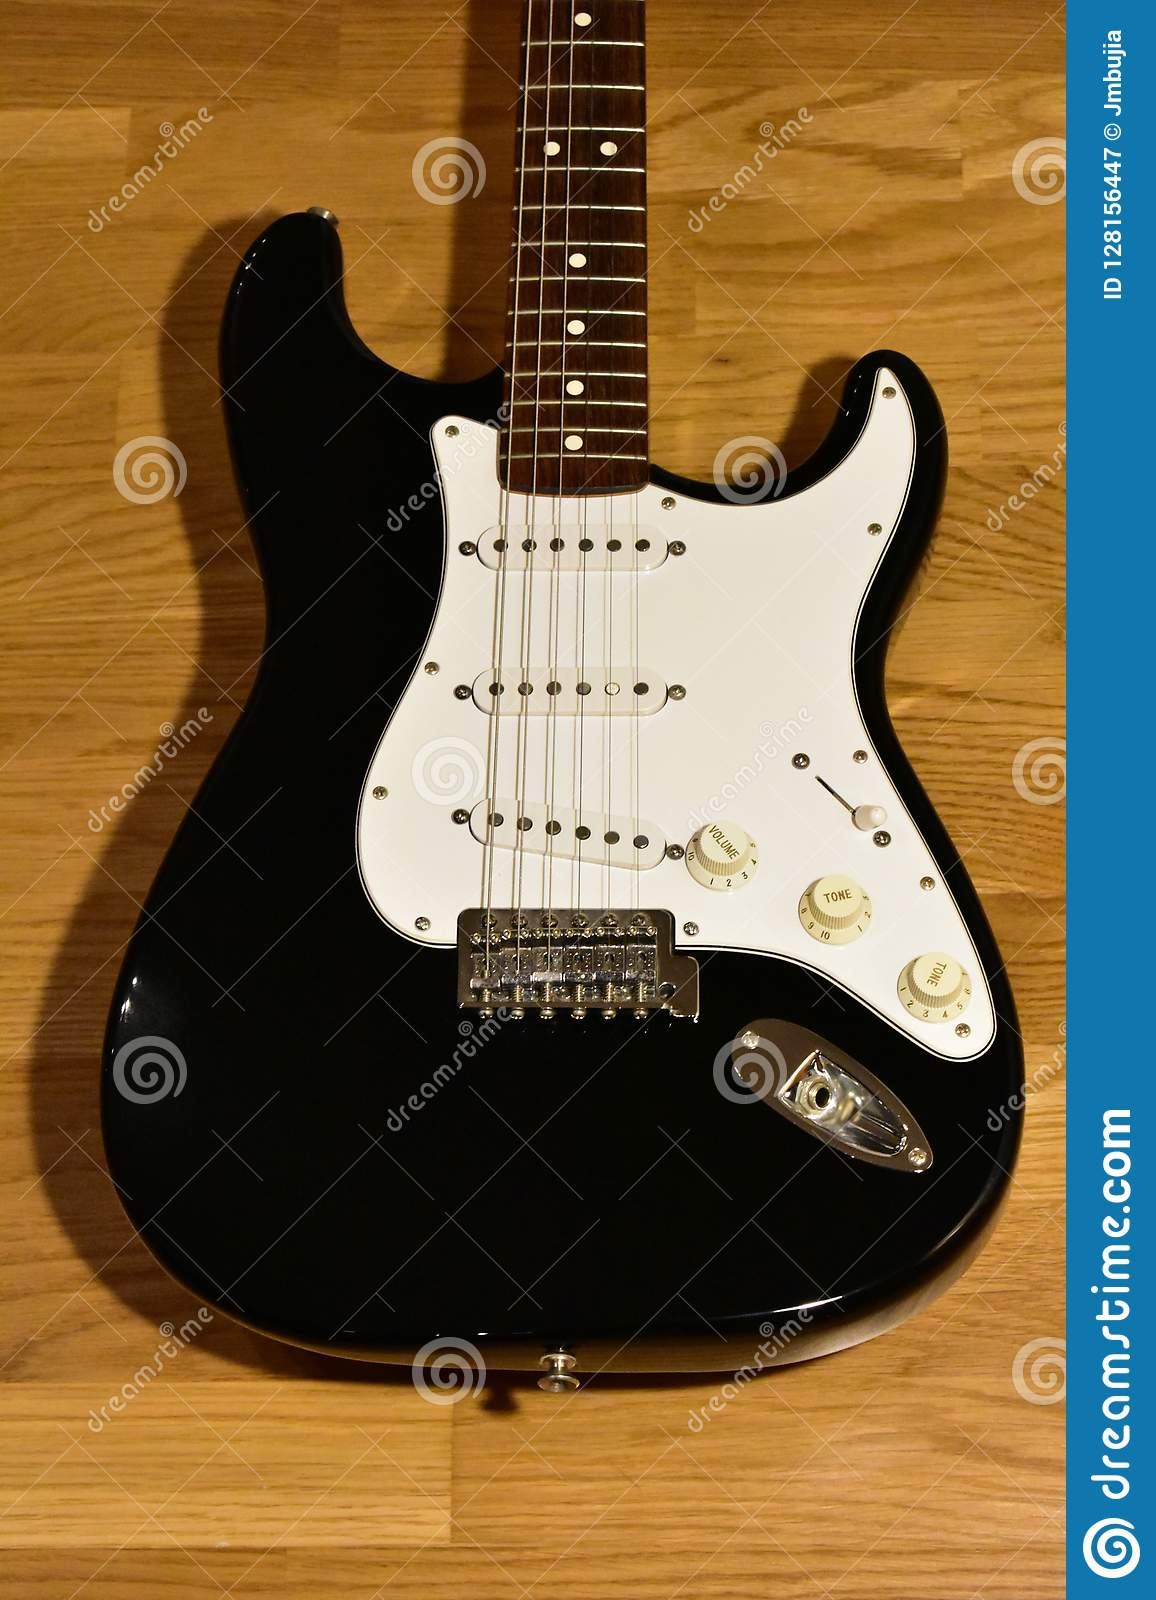 Black And White Guitar On Wood Floor  Body Detail  Stock